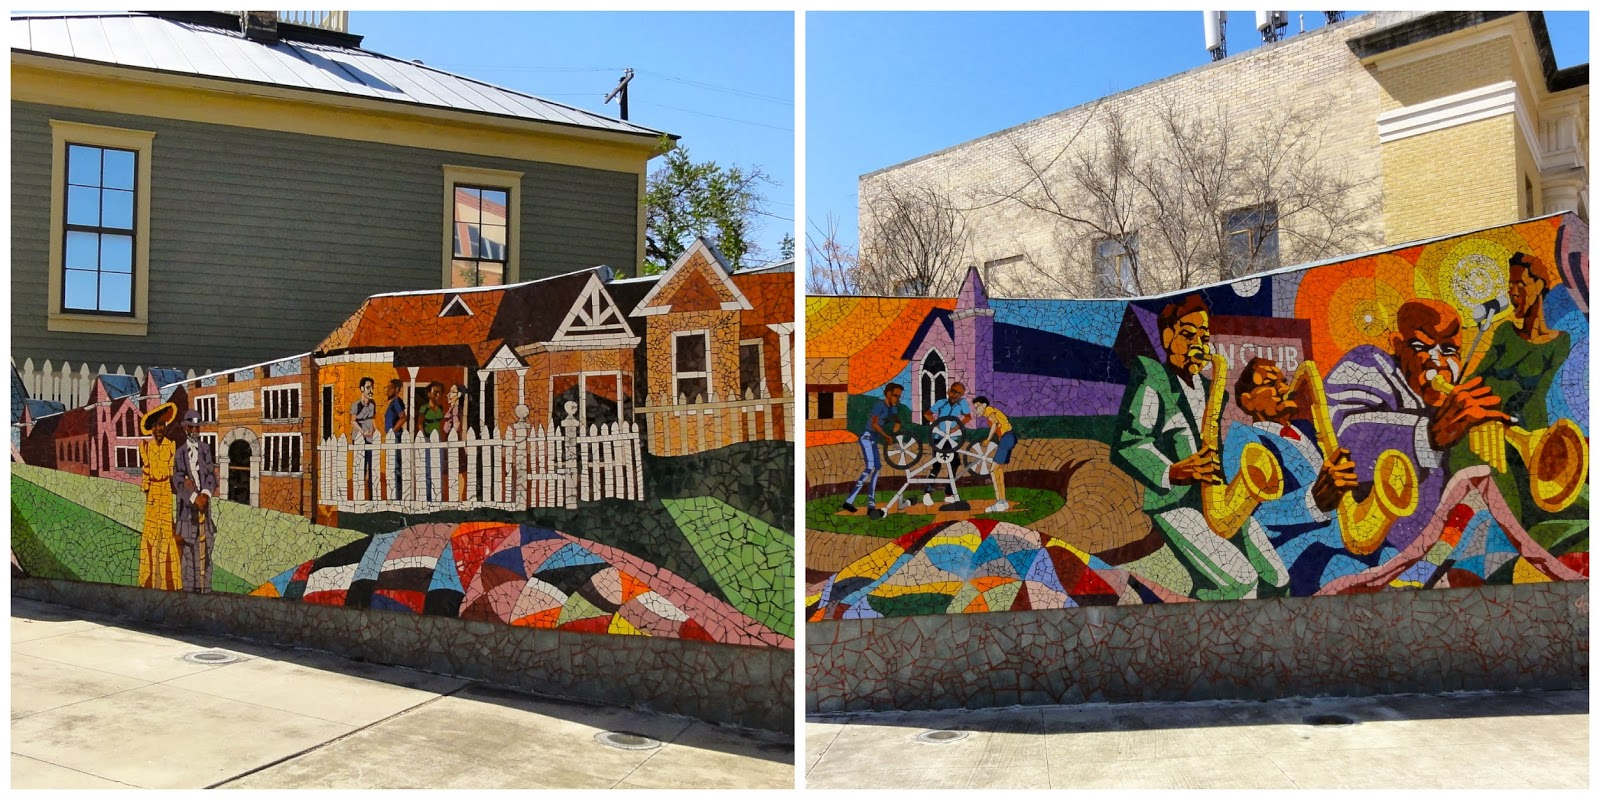 Austin Mural Rhapsody: 11th & Waller